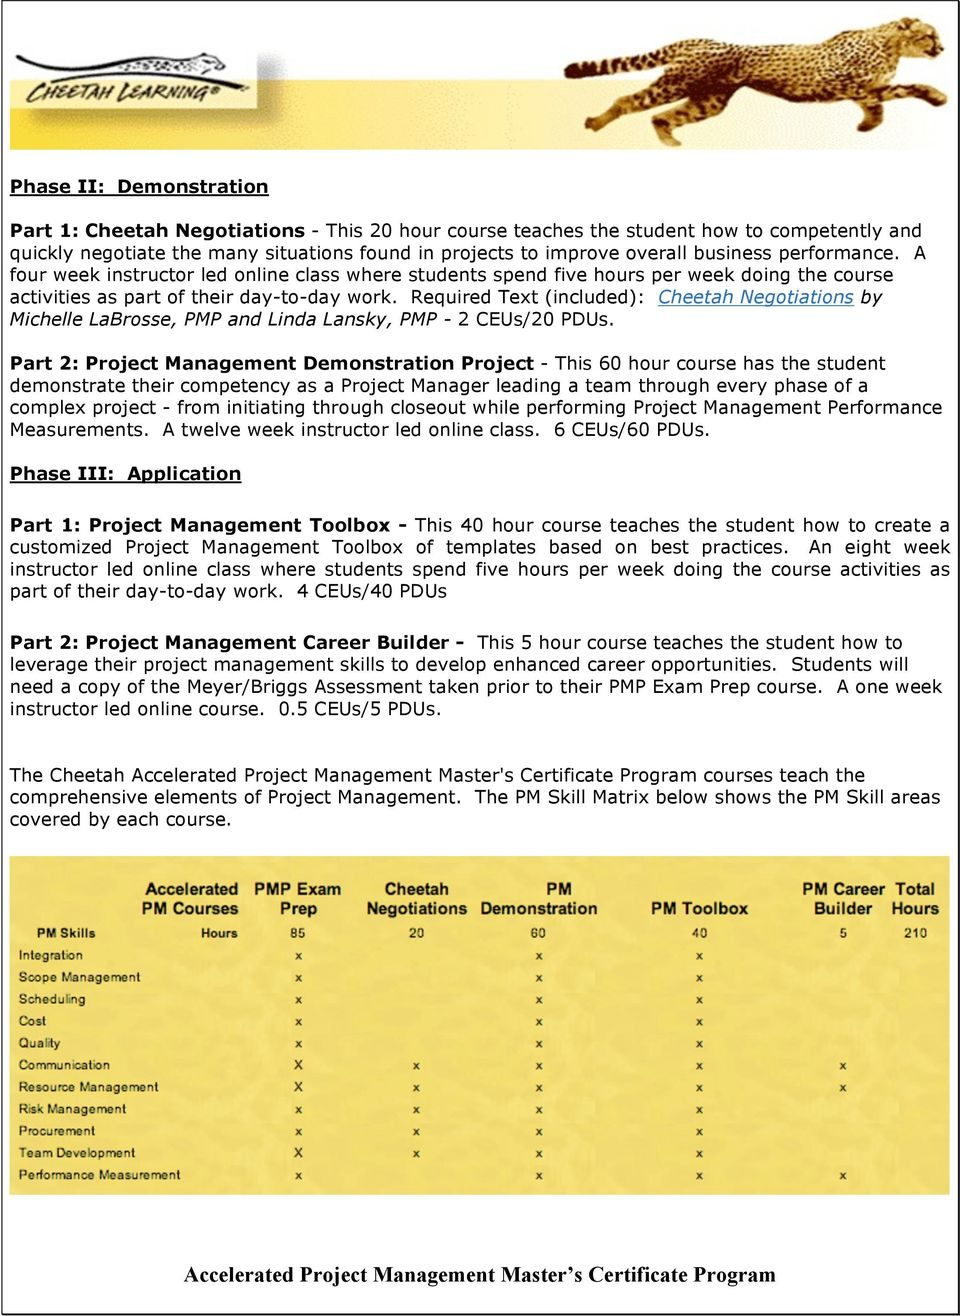 Required Text (included): Cheetah Negotiations by Michelle LaBrosse, PMP and Linda Lansky, PMP - 2 CEUs/20 PDUs.